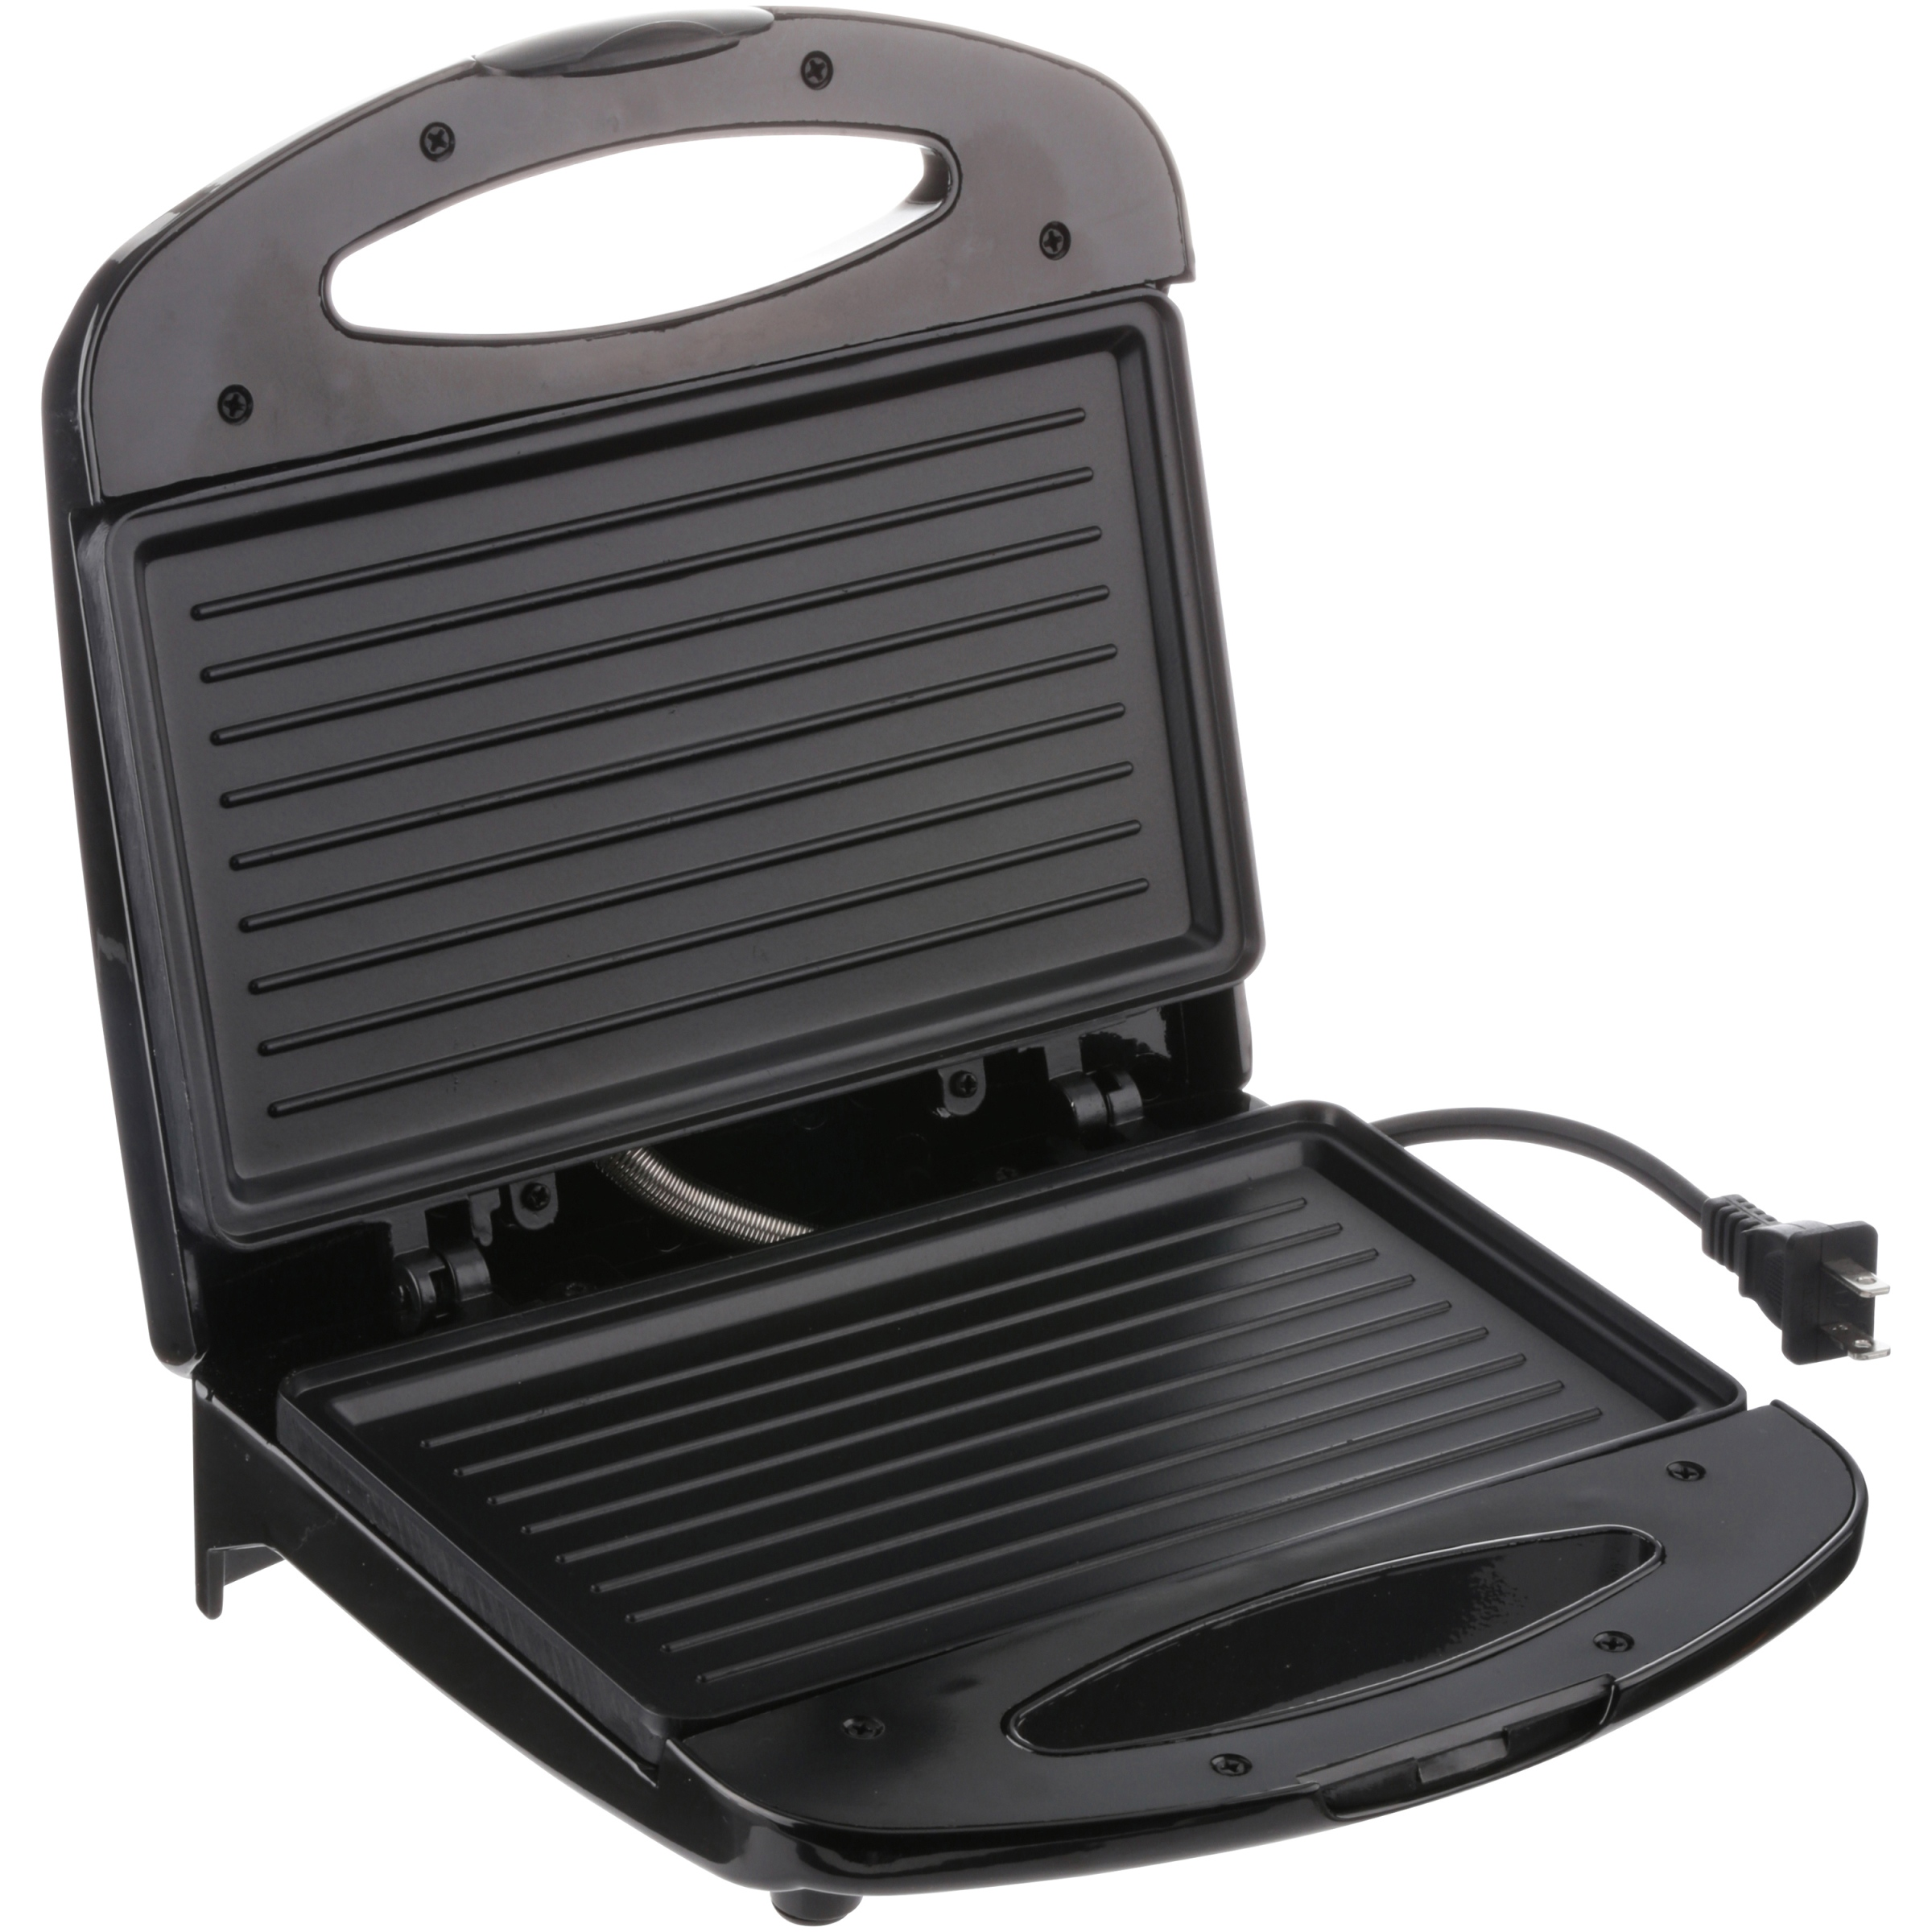 Chefman Contact Grill, Black - 2 Slice Non-Stick Grill Plates, includes Removable Drip Tray